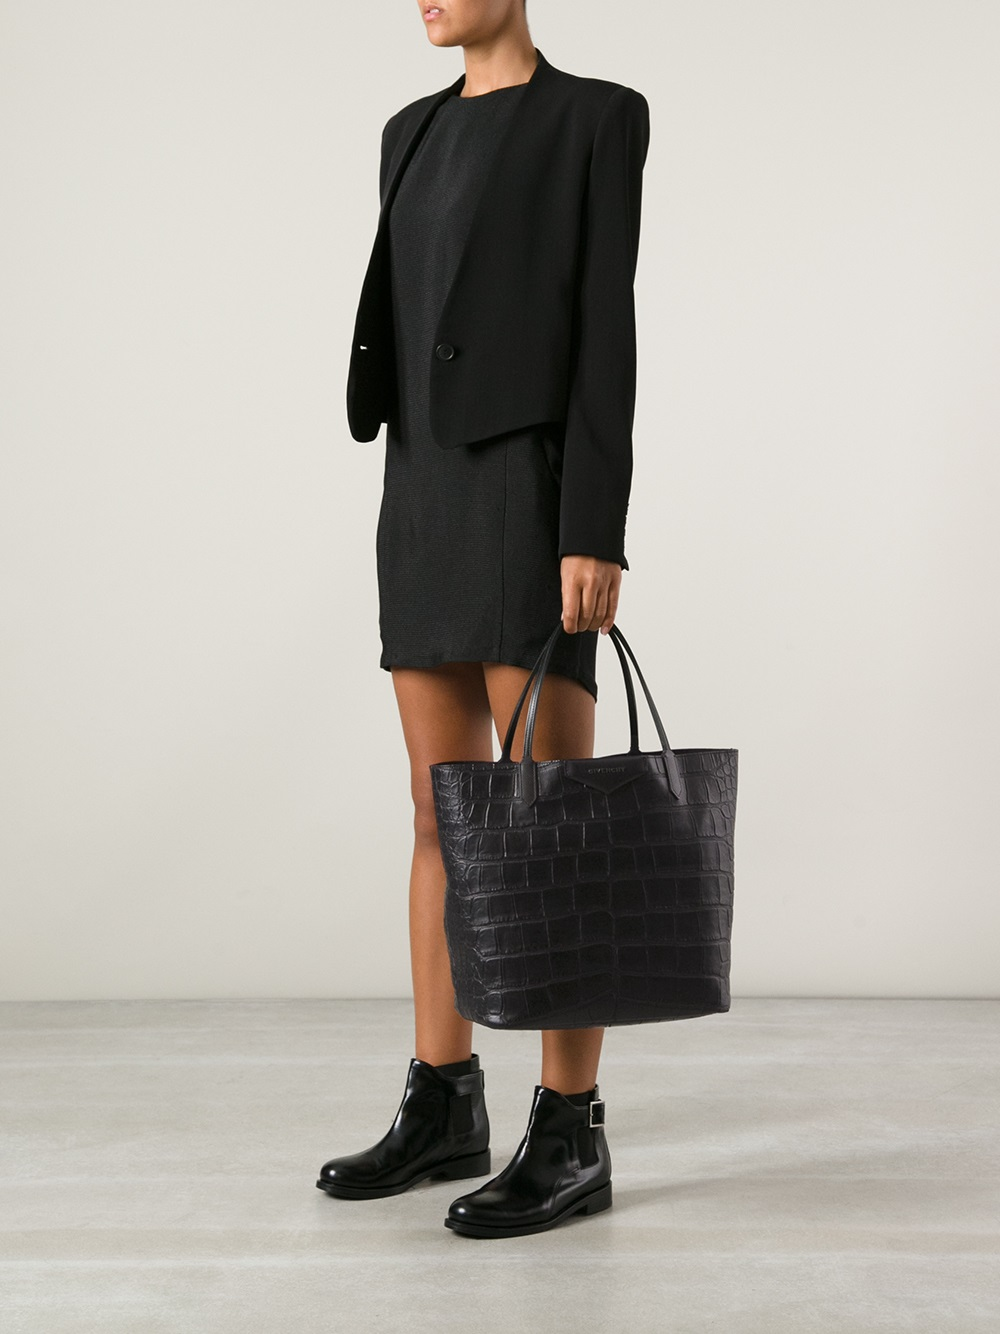 acf25ca71c Lyst - Givenchy Antigona Large Shopping Tote in Black